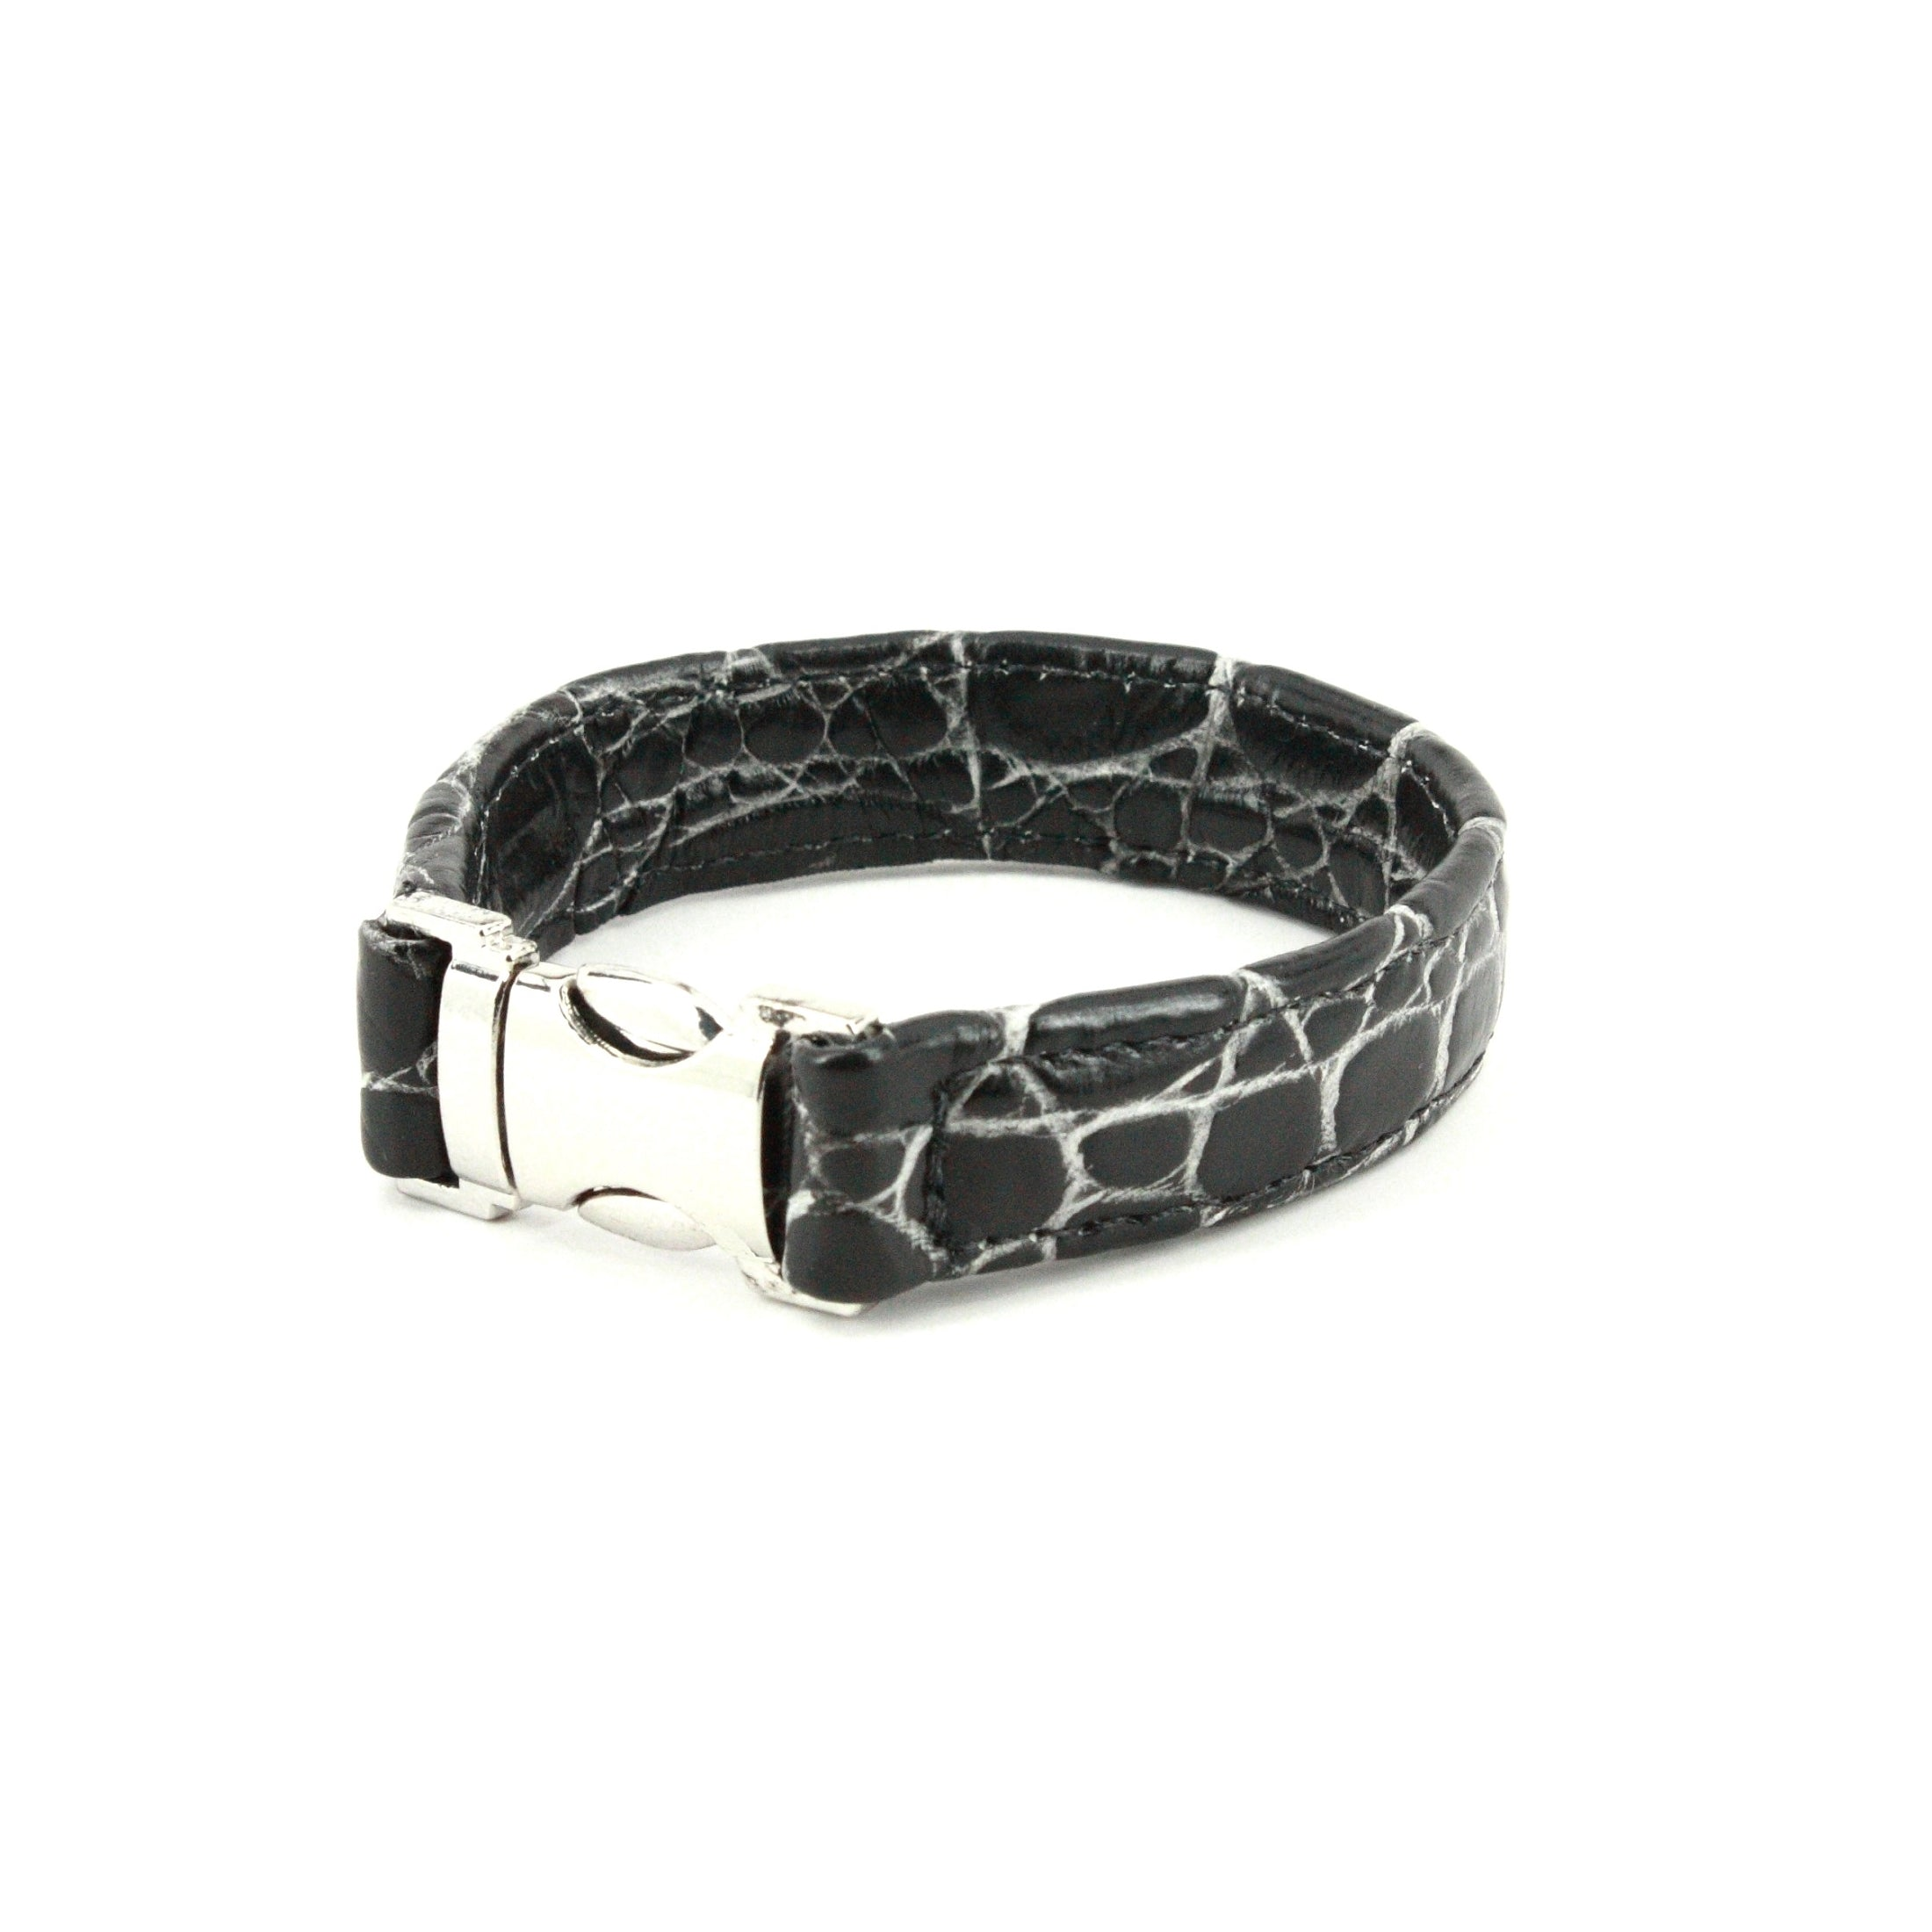 GENUINE NILE CROCODILE CUFF BRACELET - BLACK/CREAM